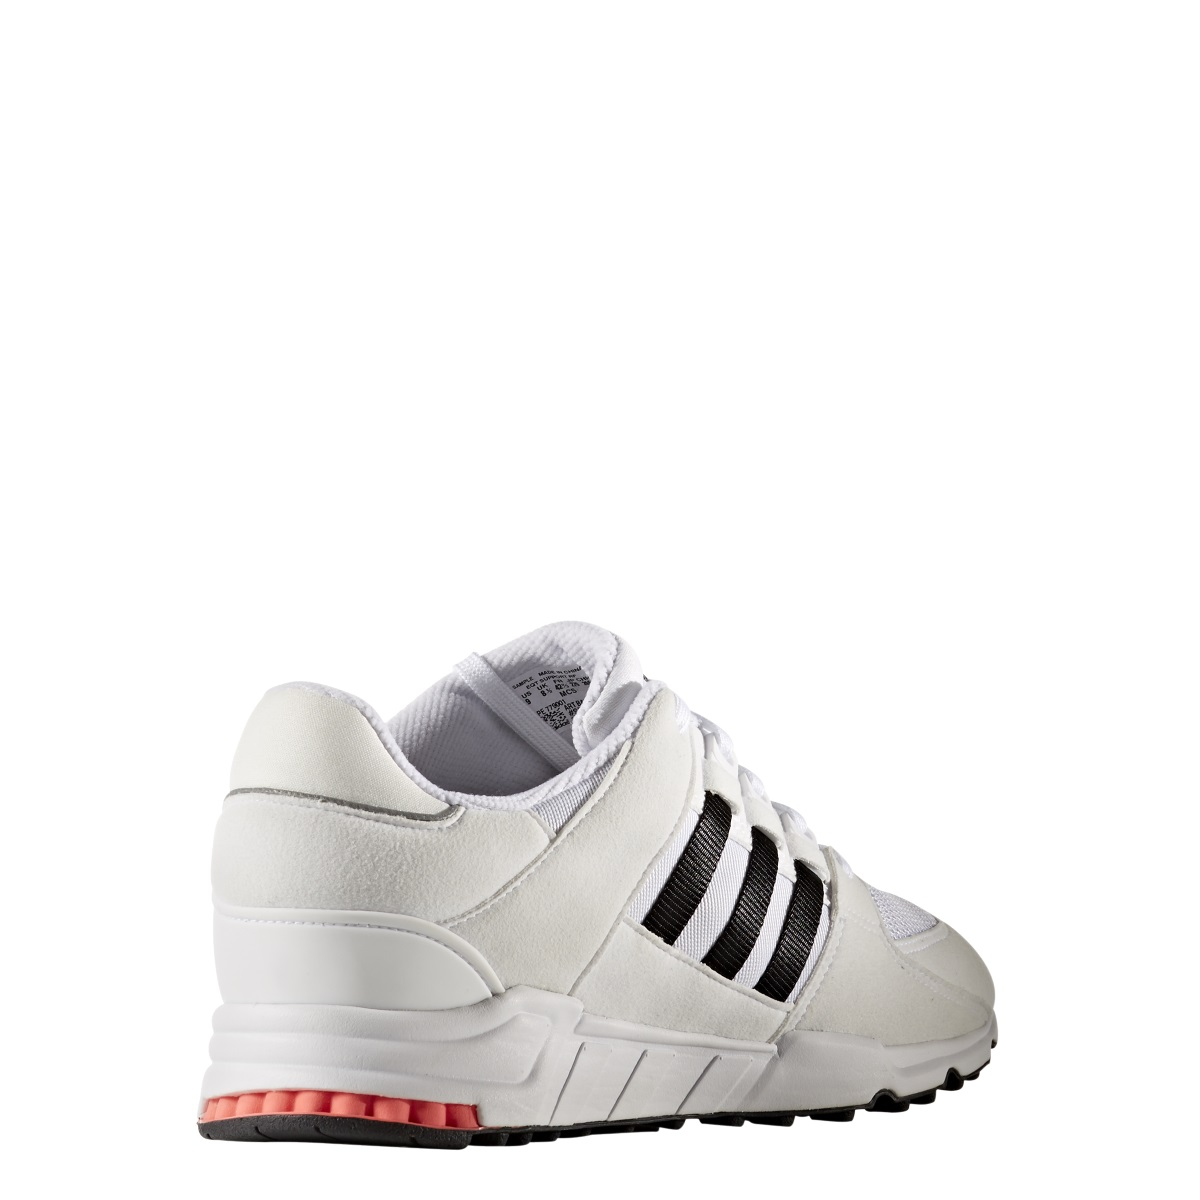 newest collection 2dece c723f adidas Herren EQT Support RF Fitnessschuhe Weiß - muwi-duess